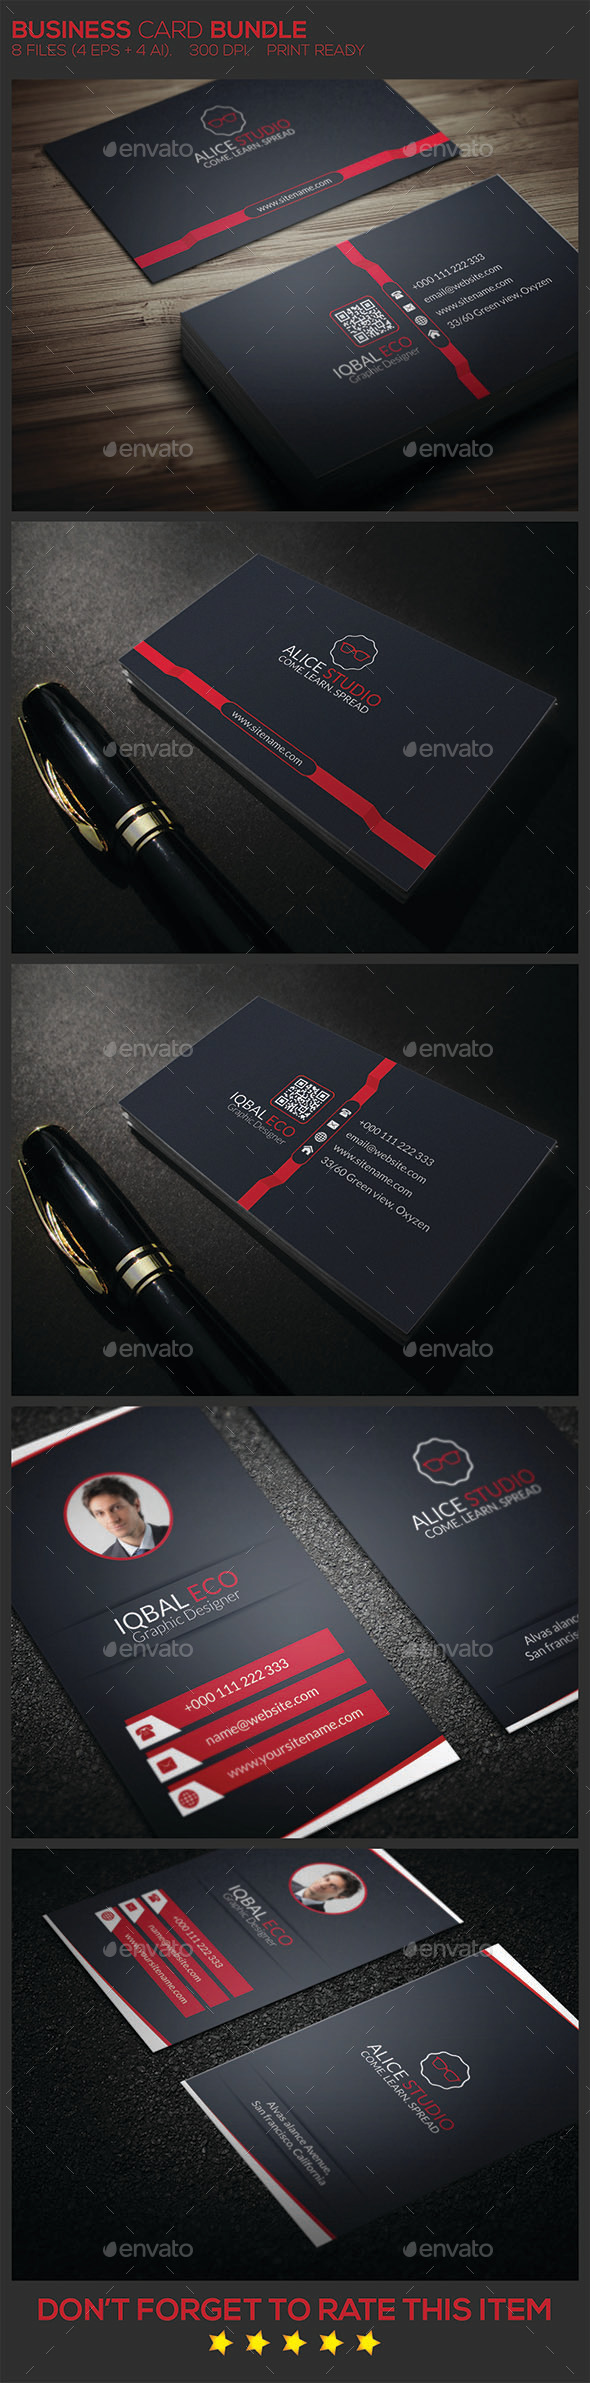 GraphicRiver Business Card Bundle 9683857